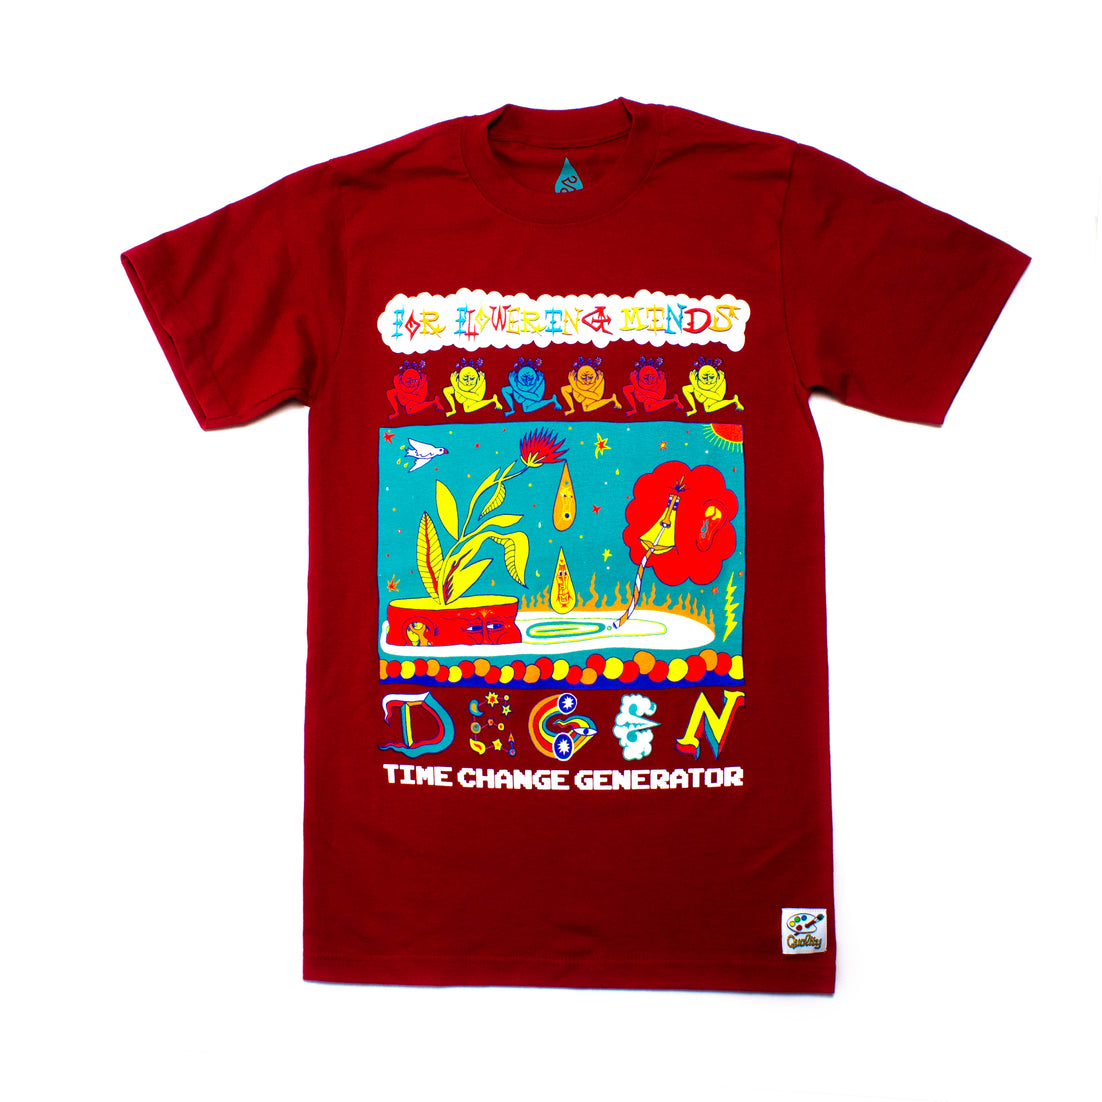 DEGEN x Time Change Generator Flowering Minds Tee